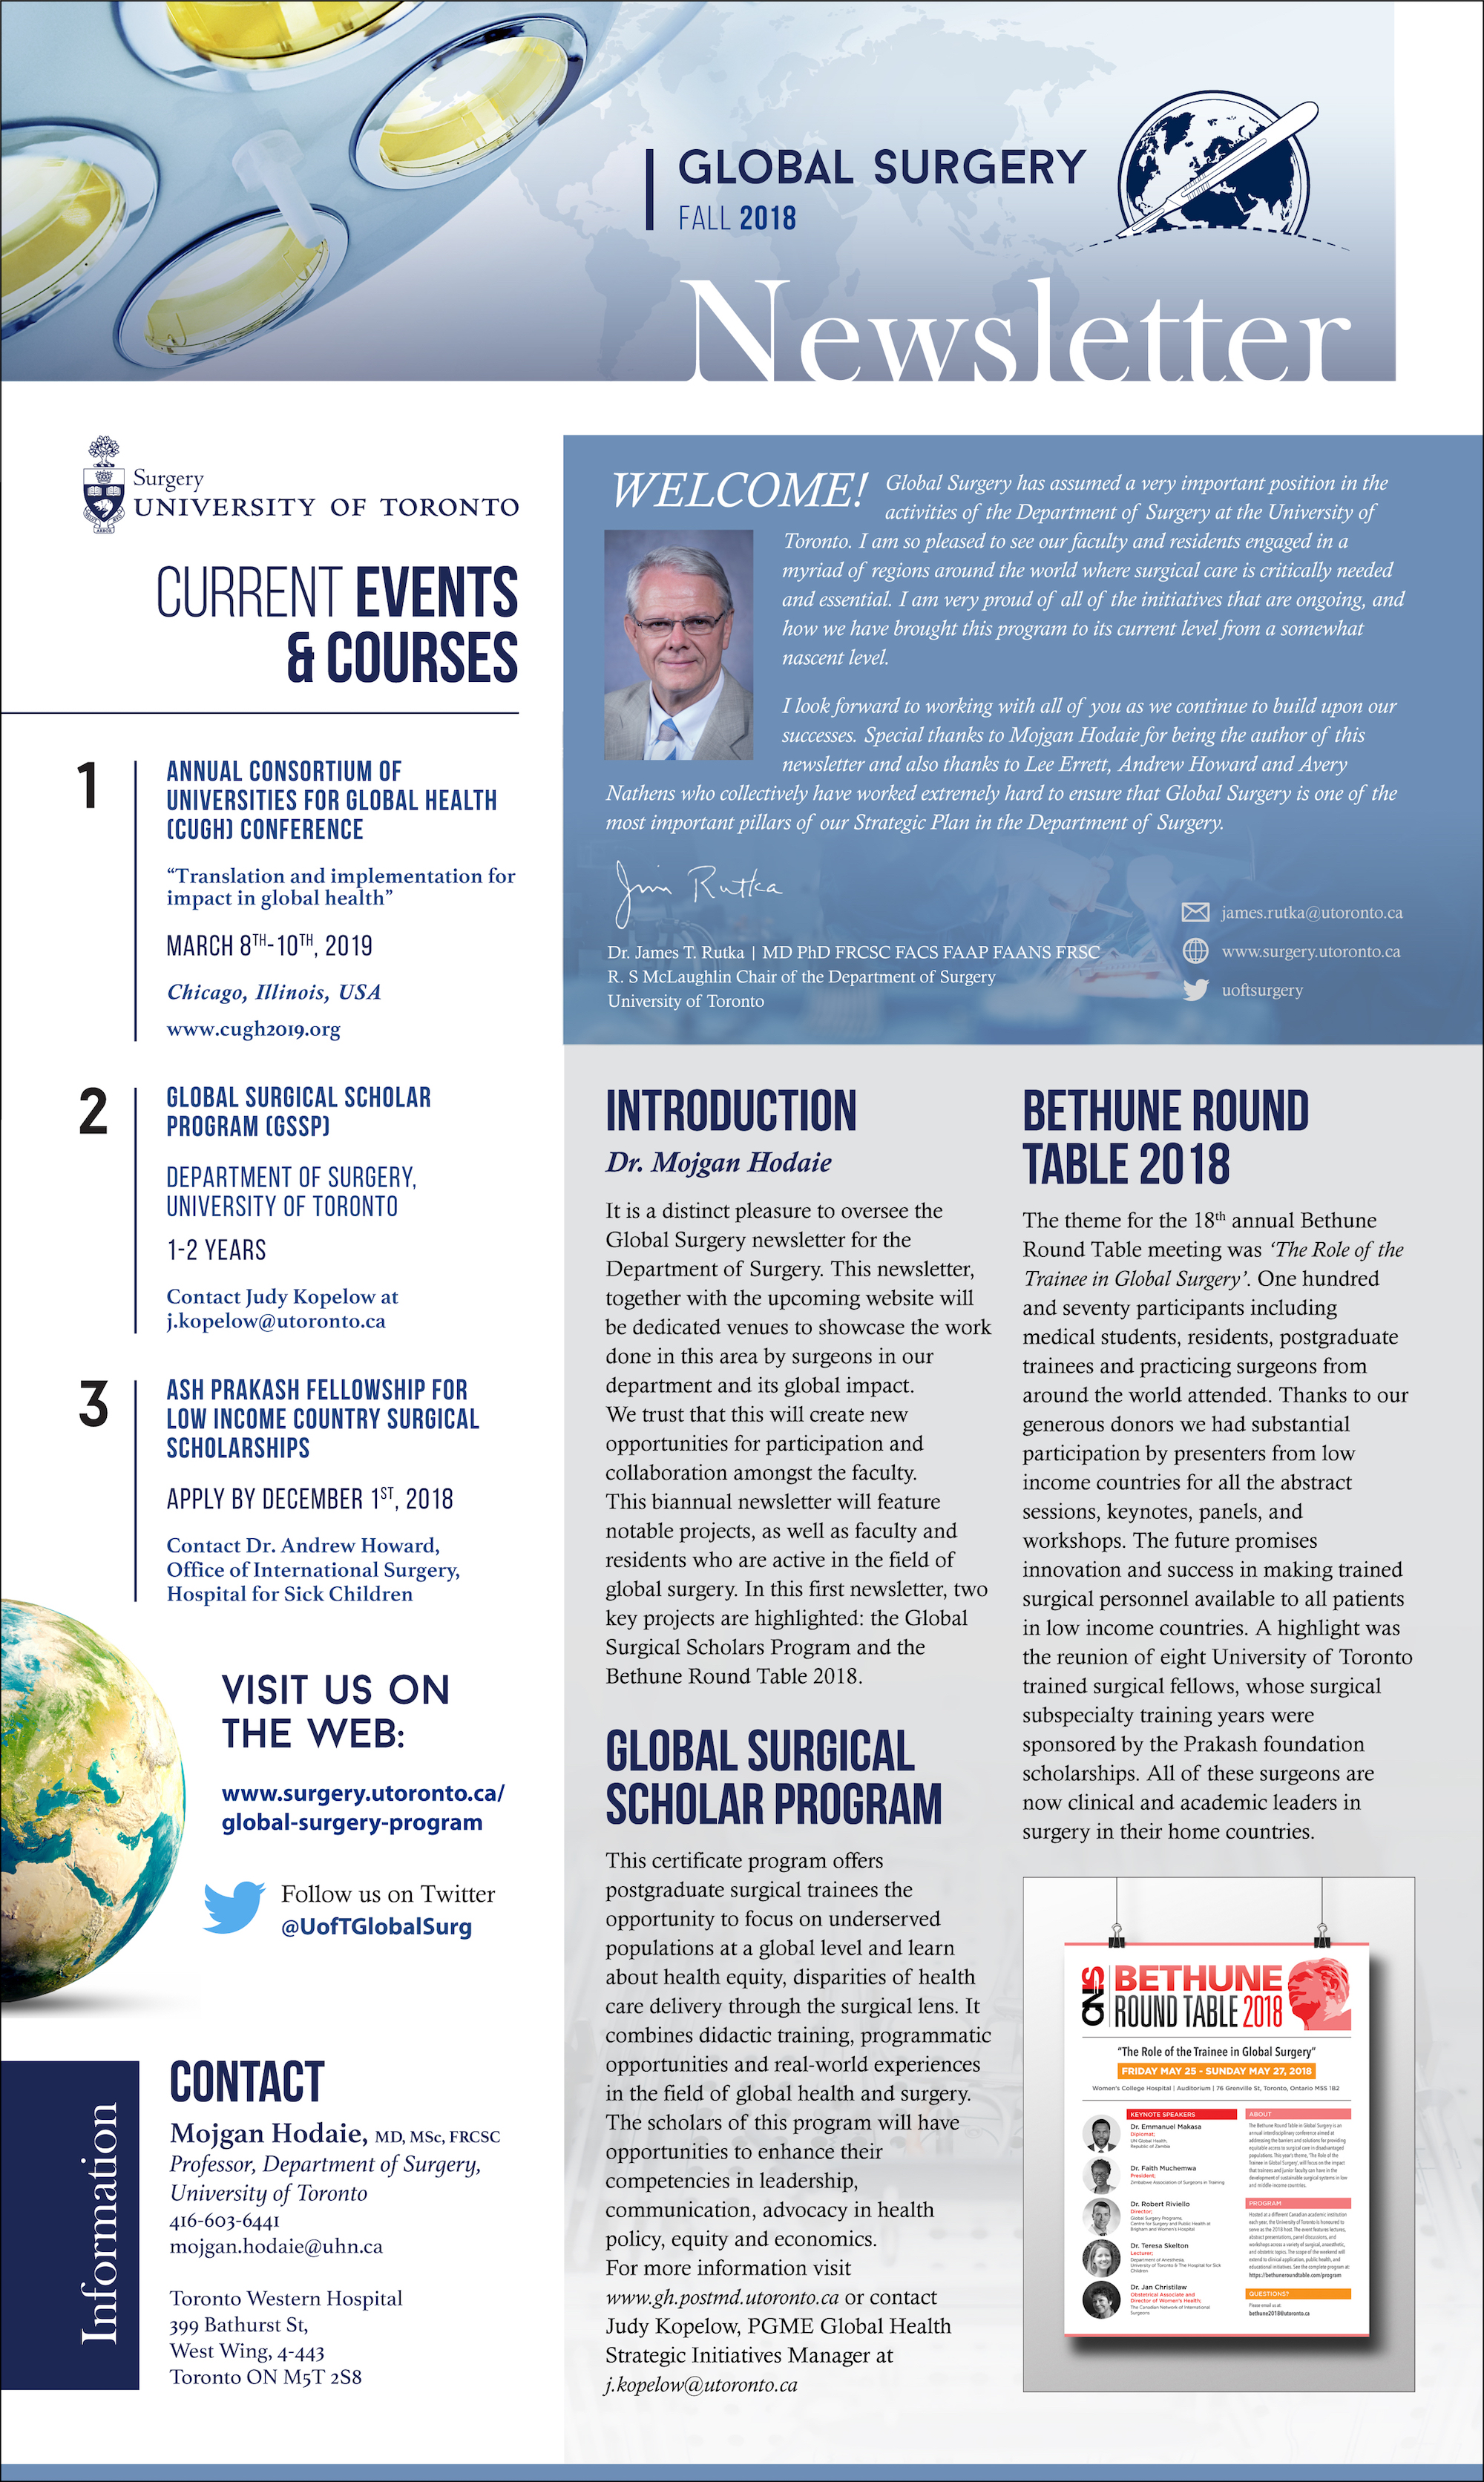 Global Surgery Newsletter Fall 2018